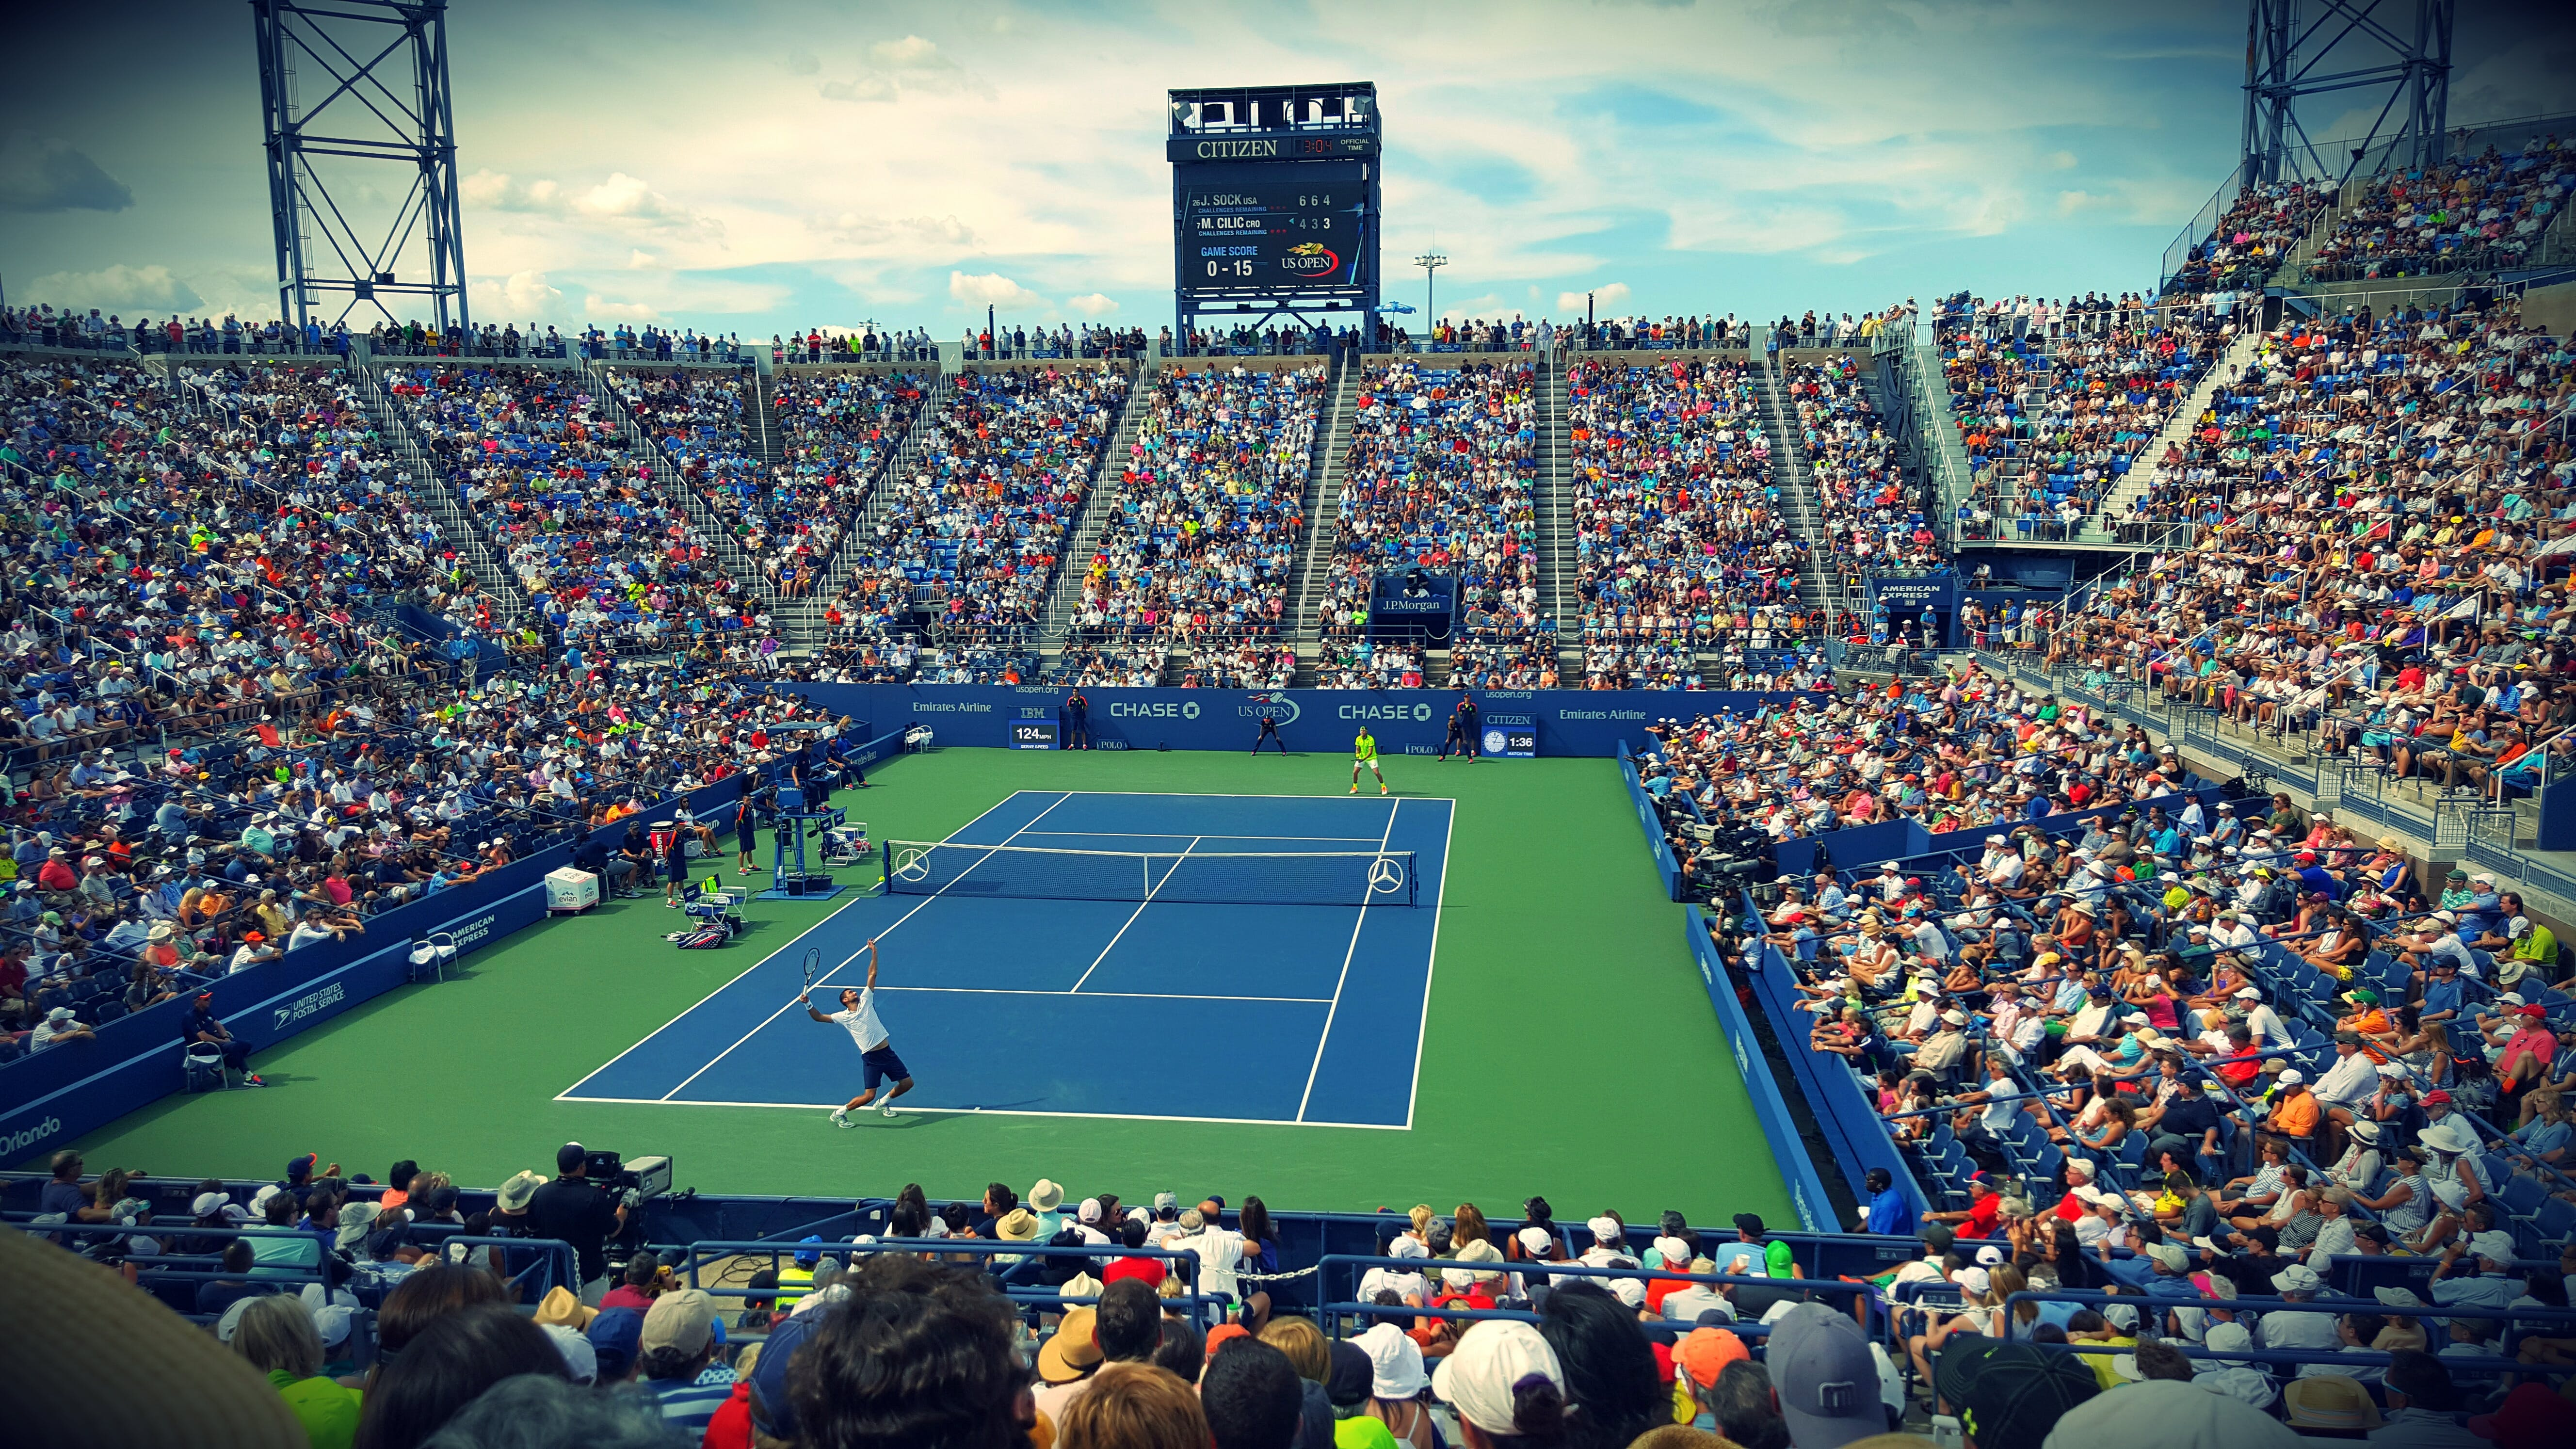 People Sitting on Bench Watching Tennis Event on Field during Daytime